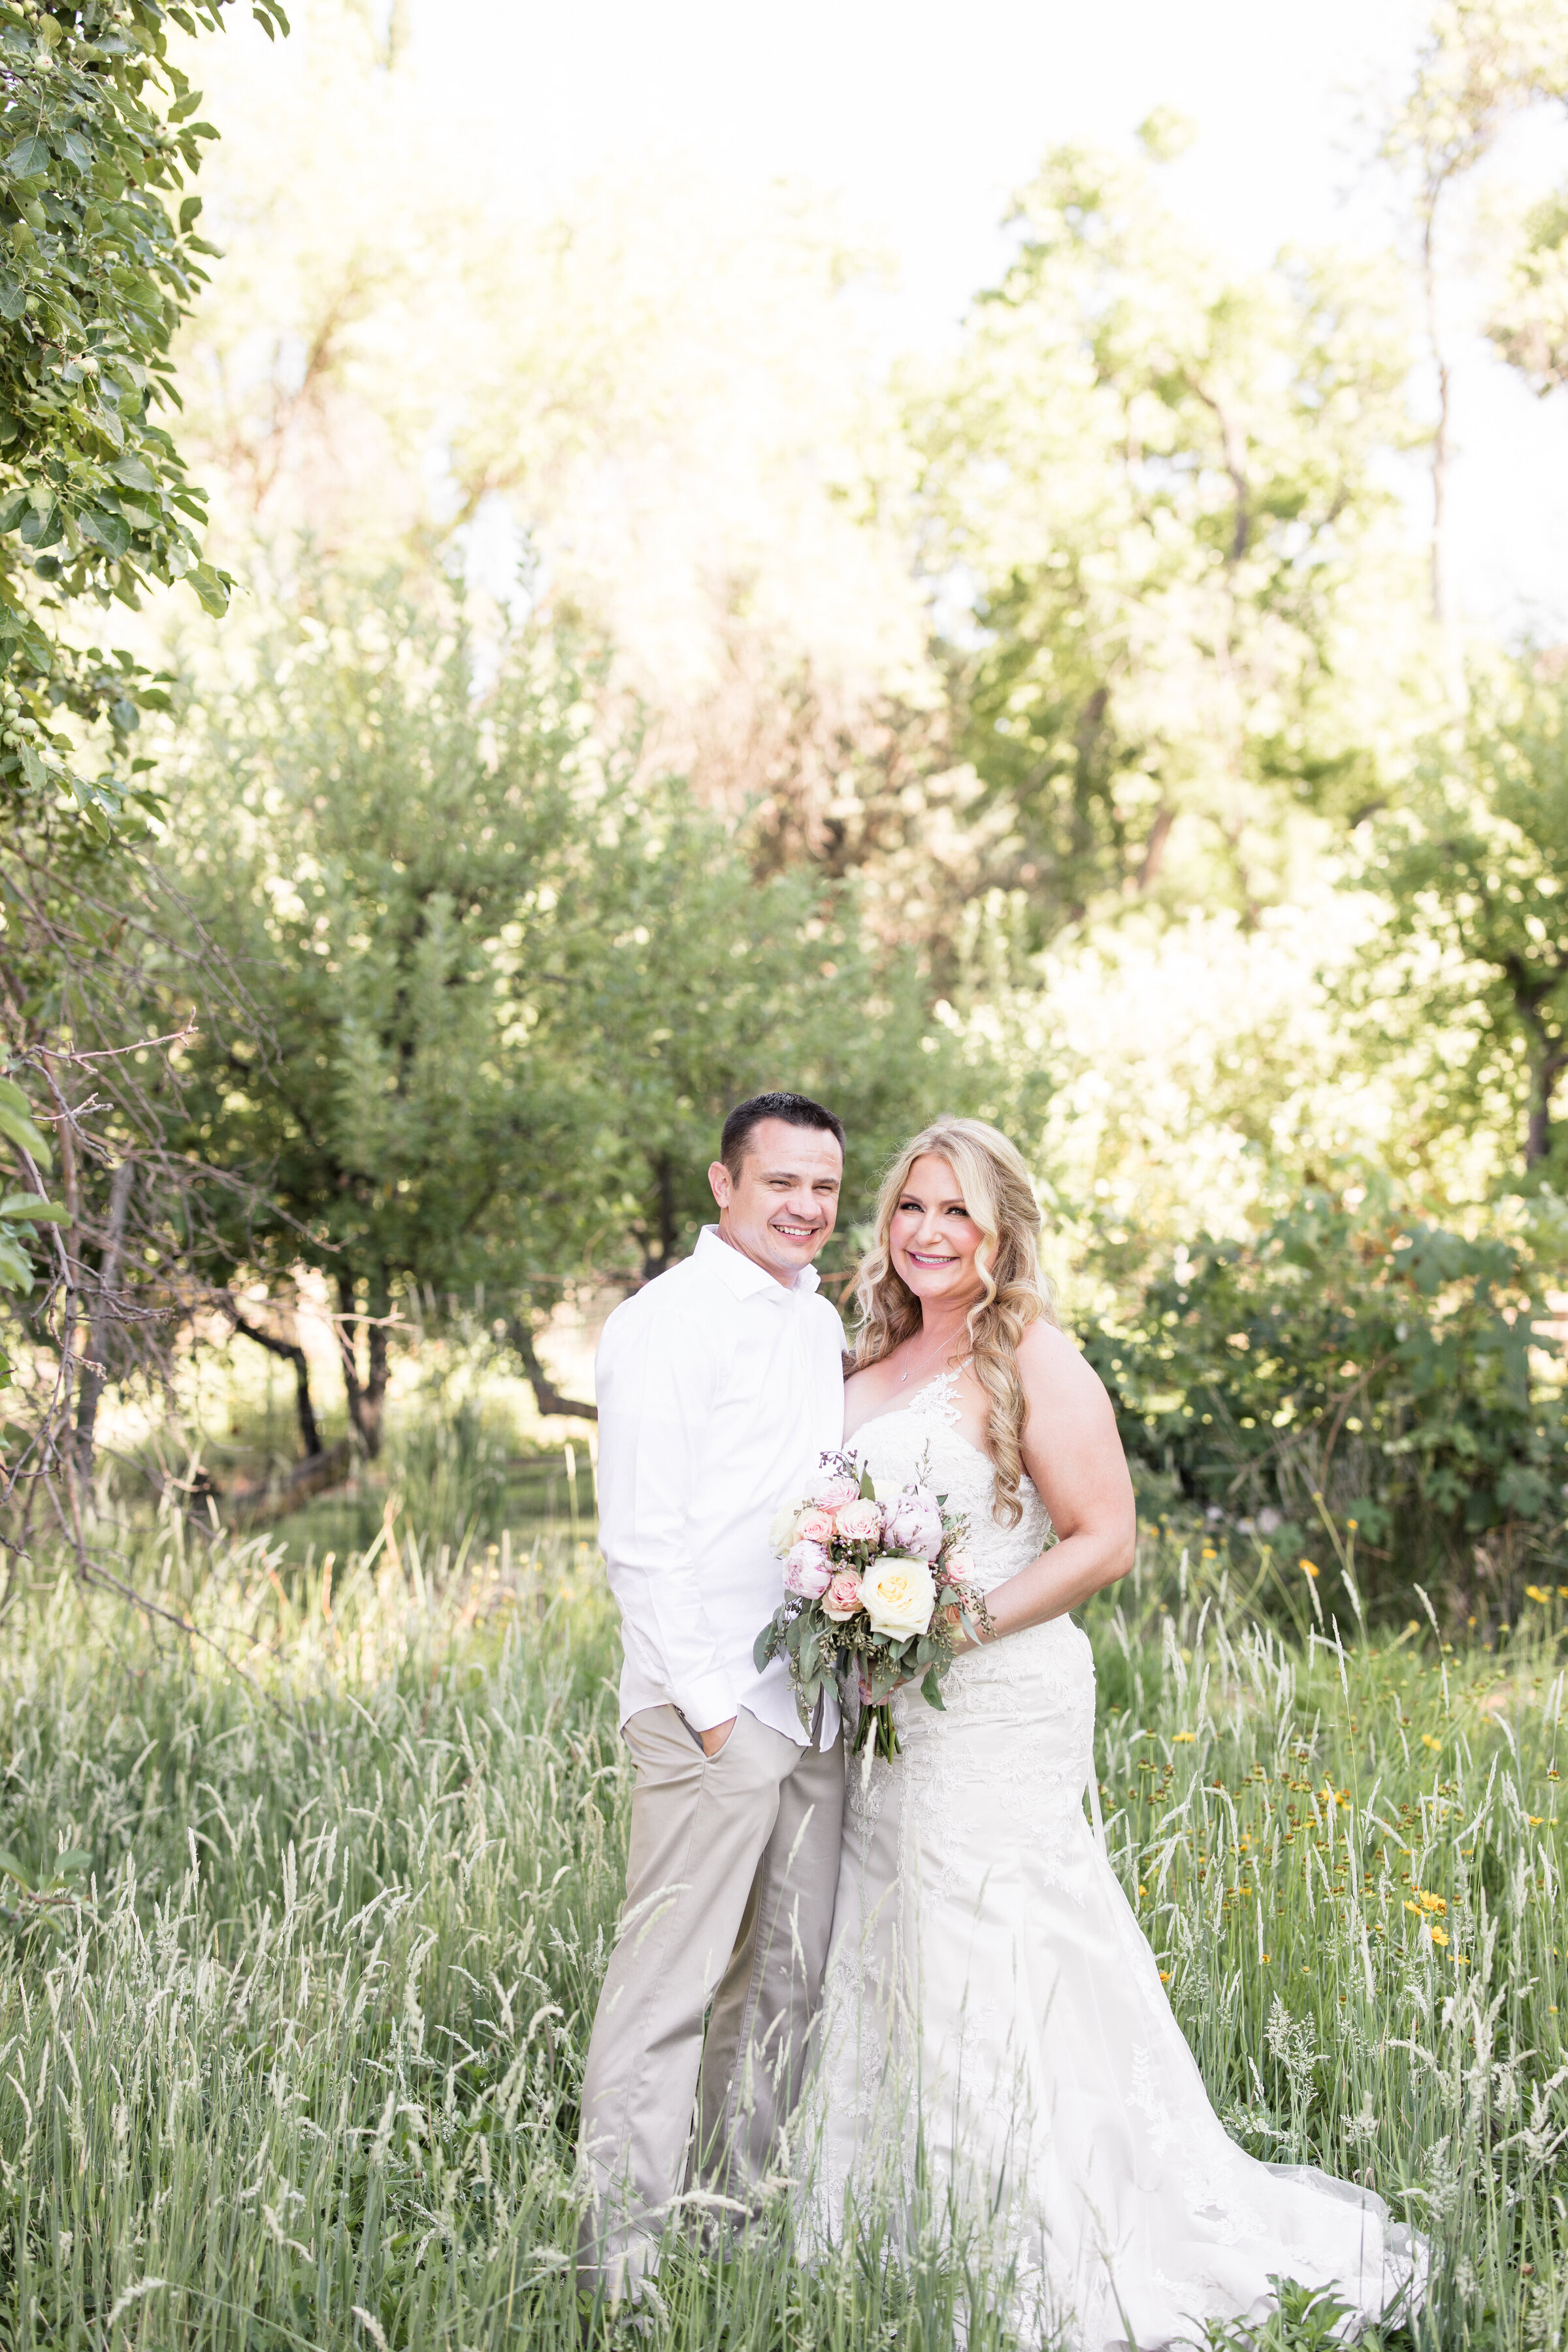 Bride and groom photos from an Arizona elopement